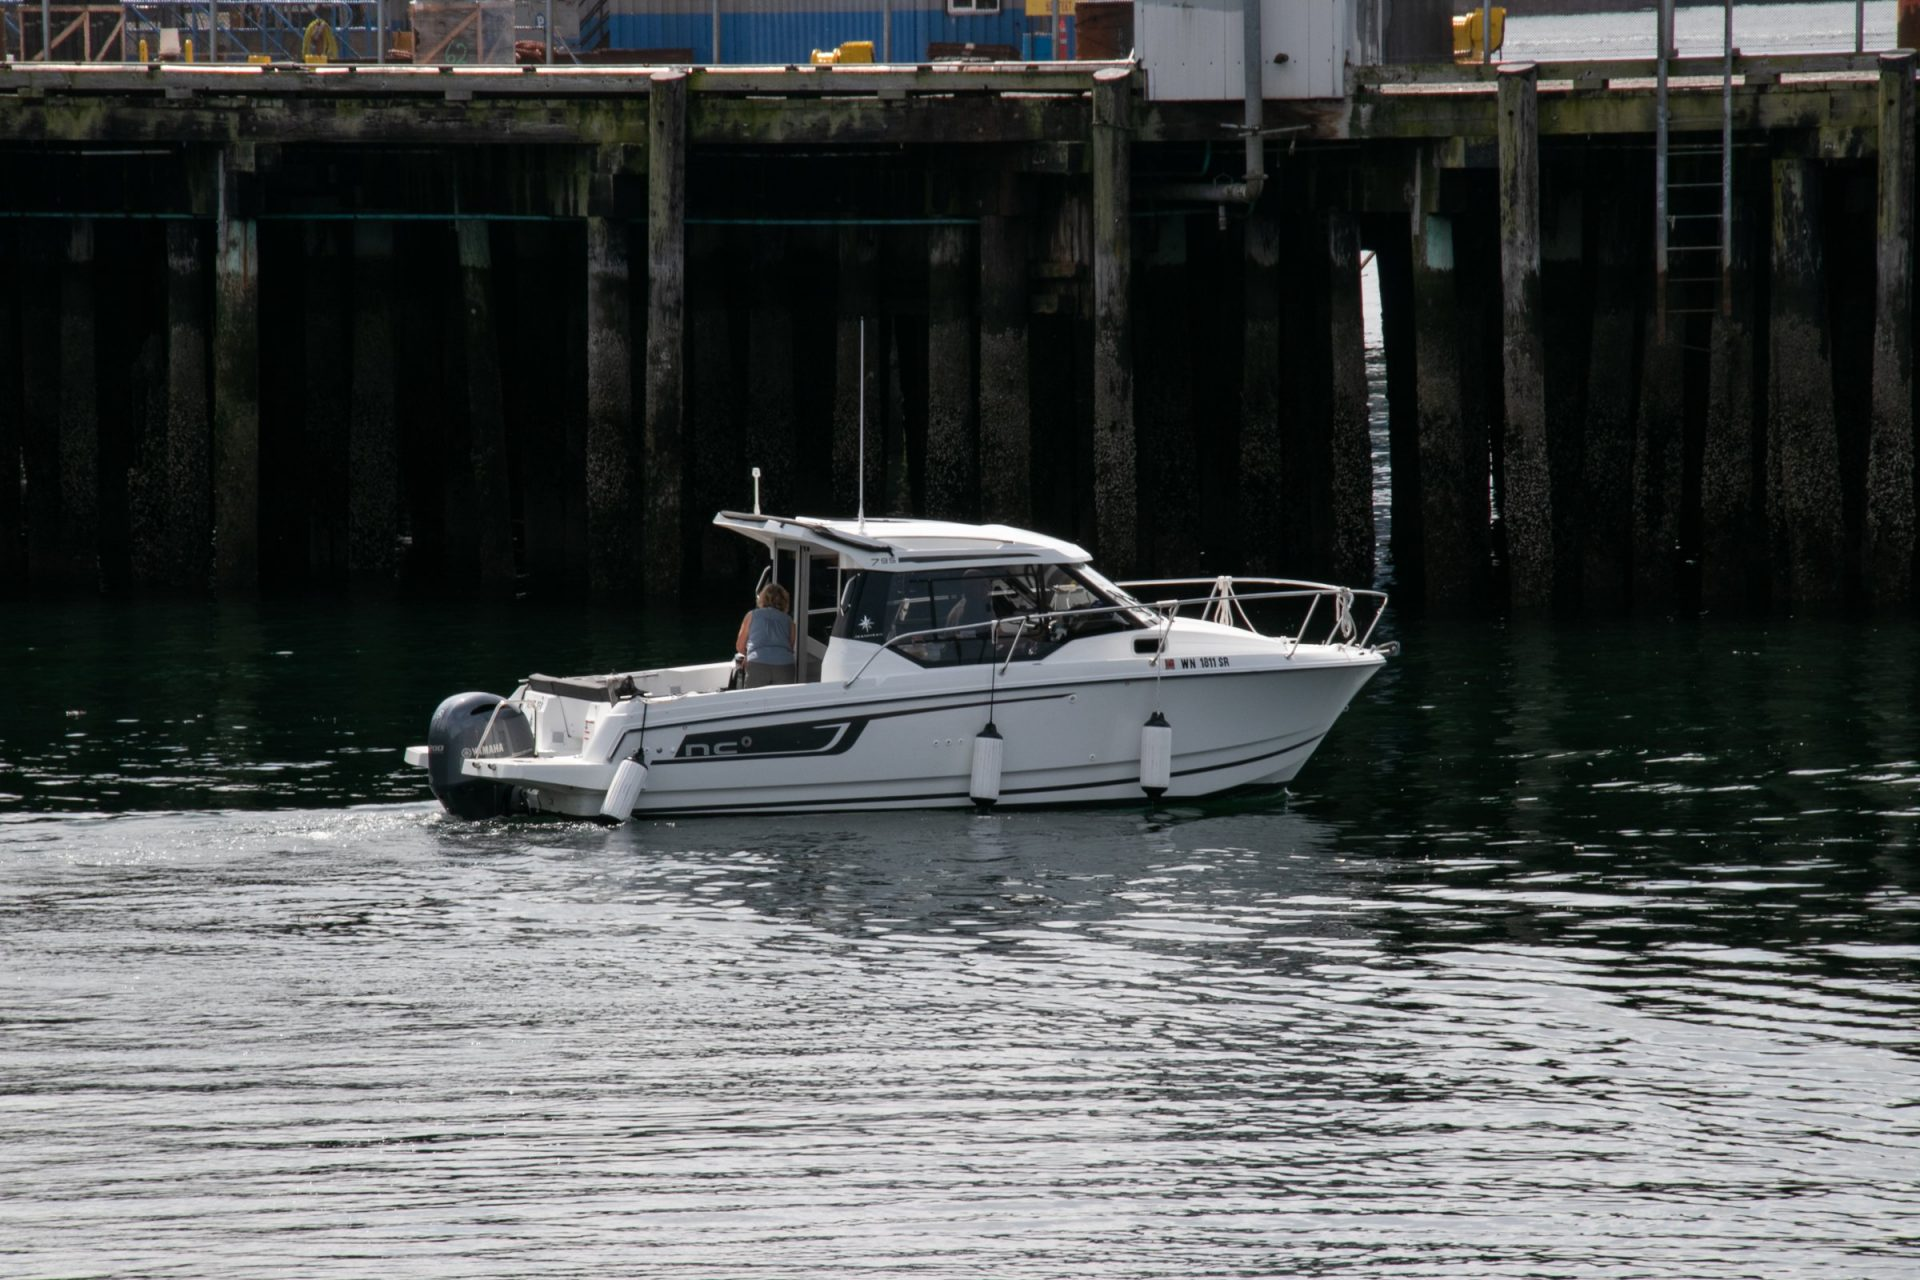 White Motorboat On Water Near Pier